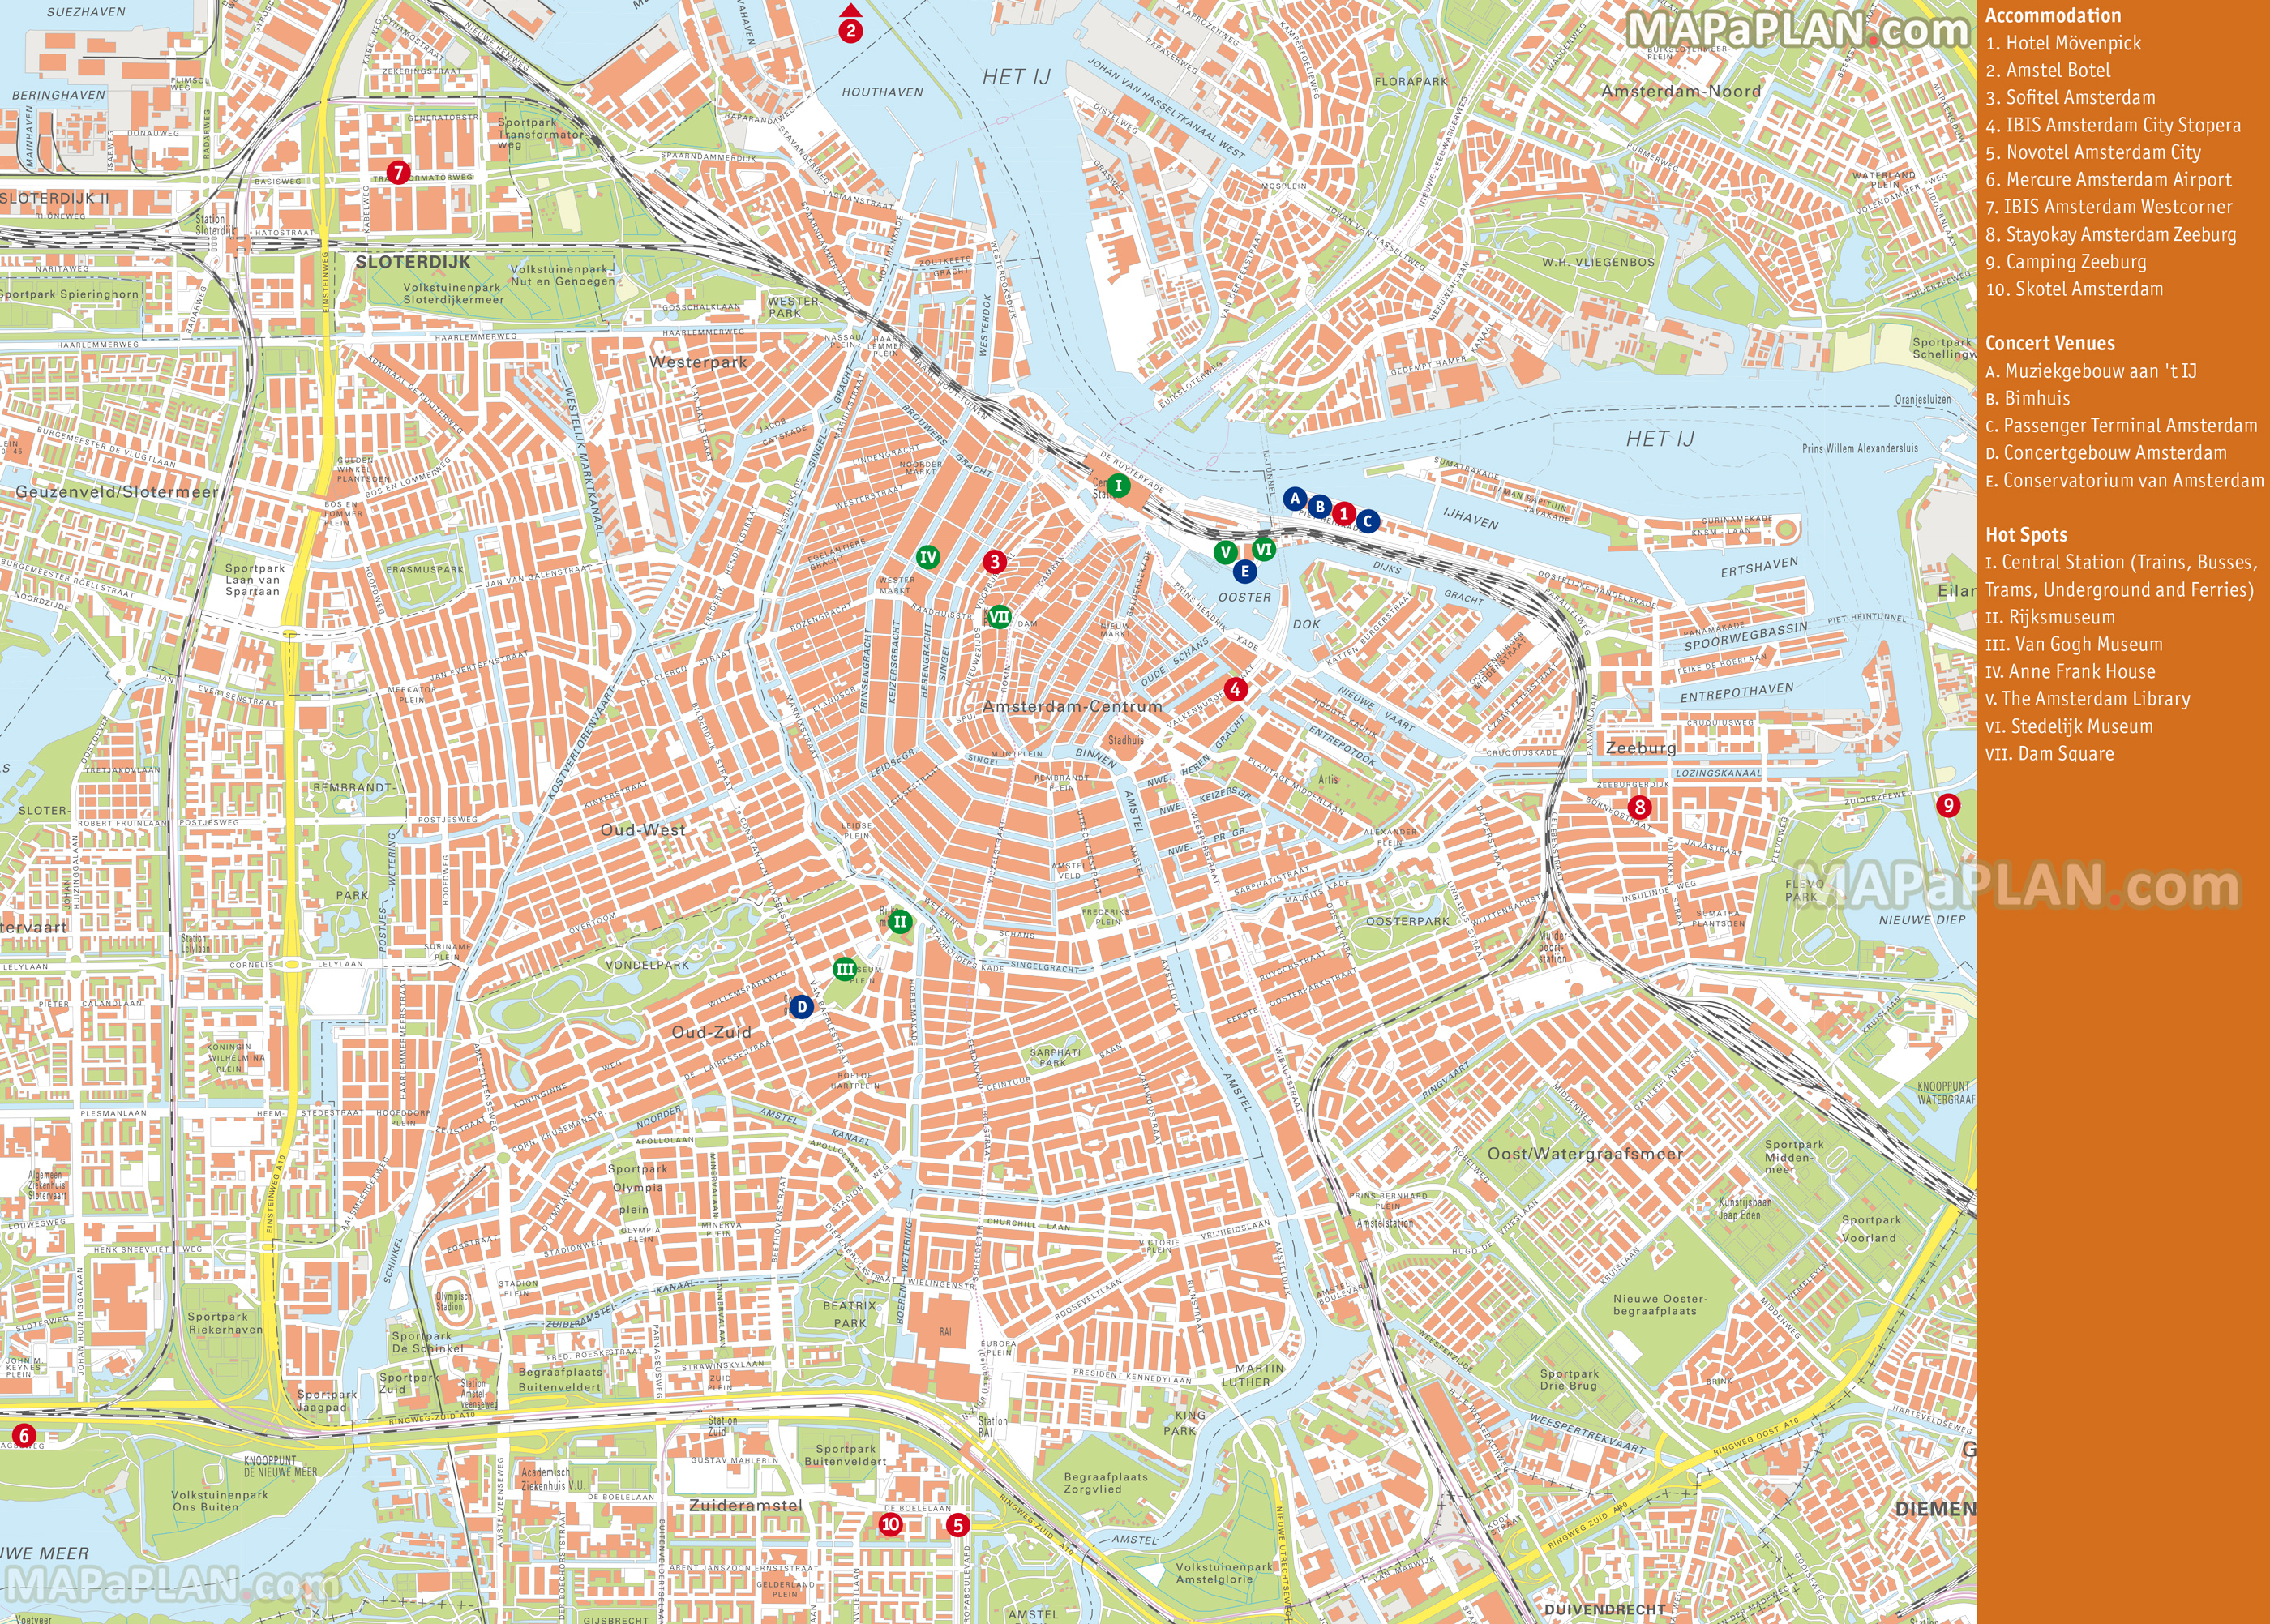 Amsterdam Street Map Amsterdam maps   Top tourist attractions   Free, printable city